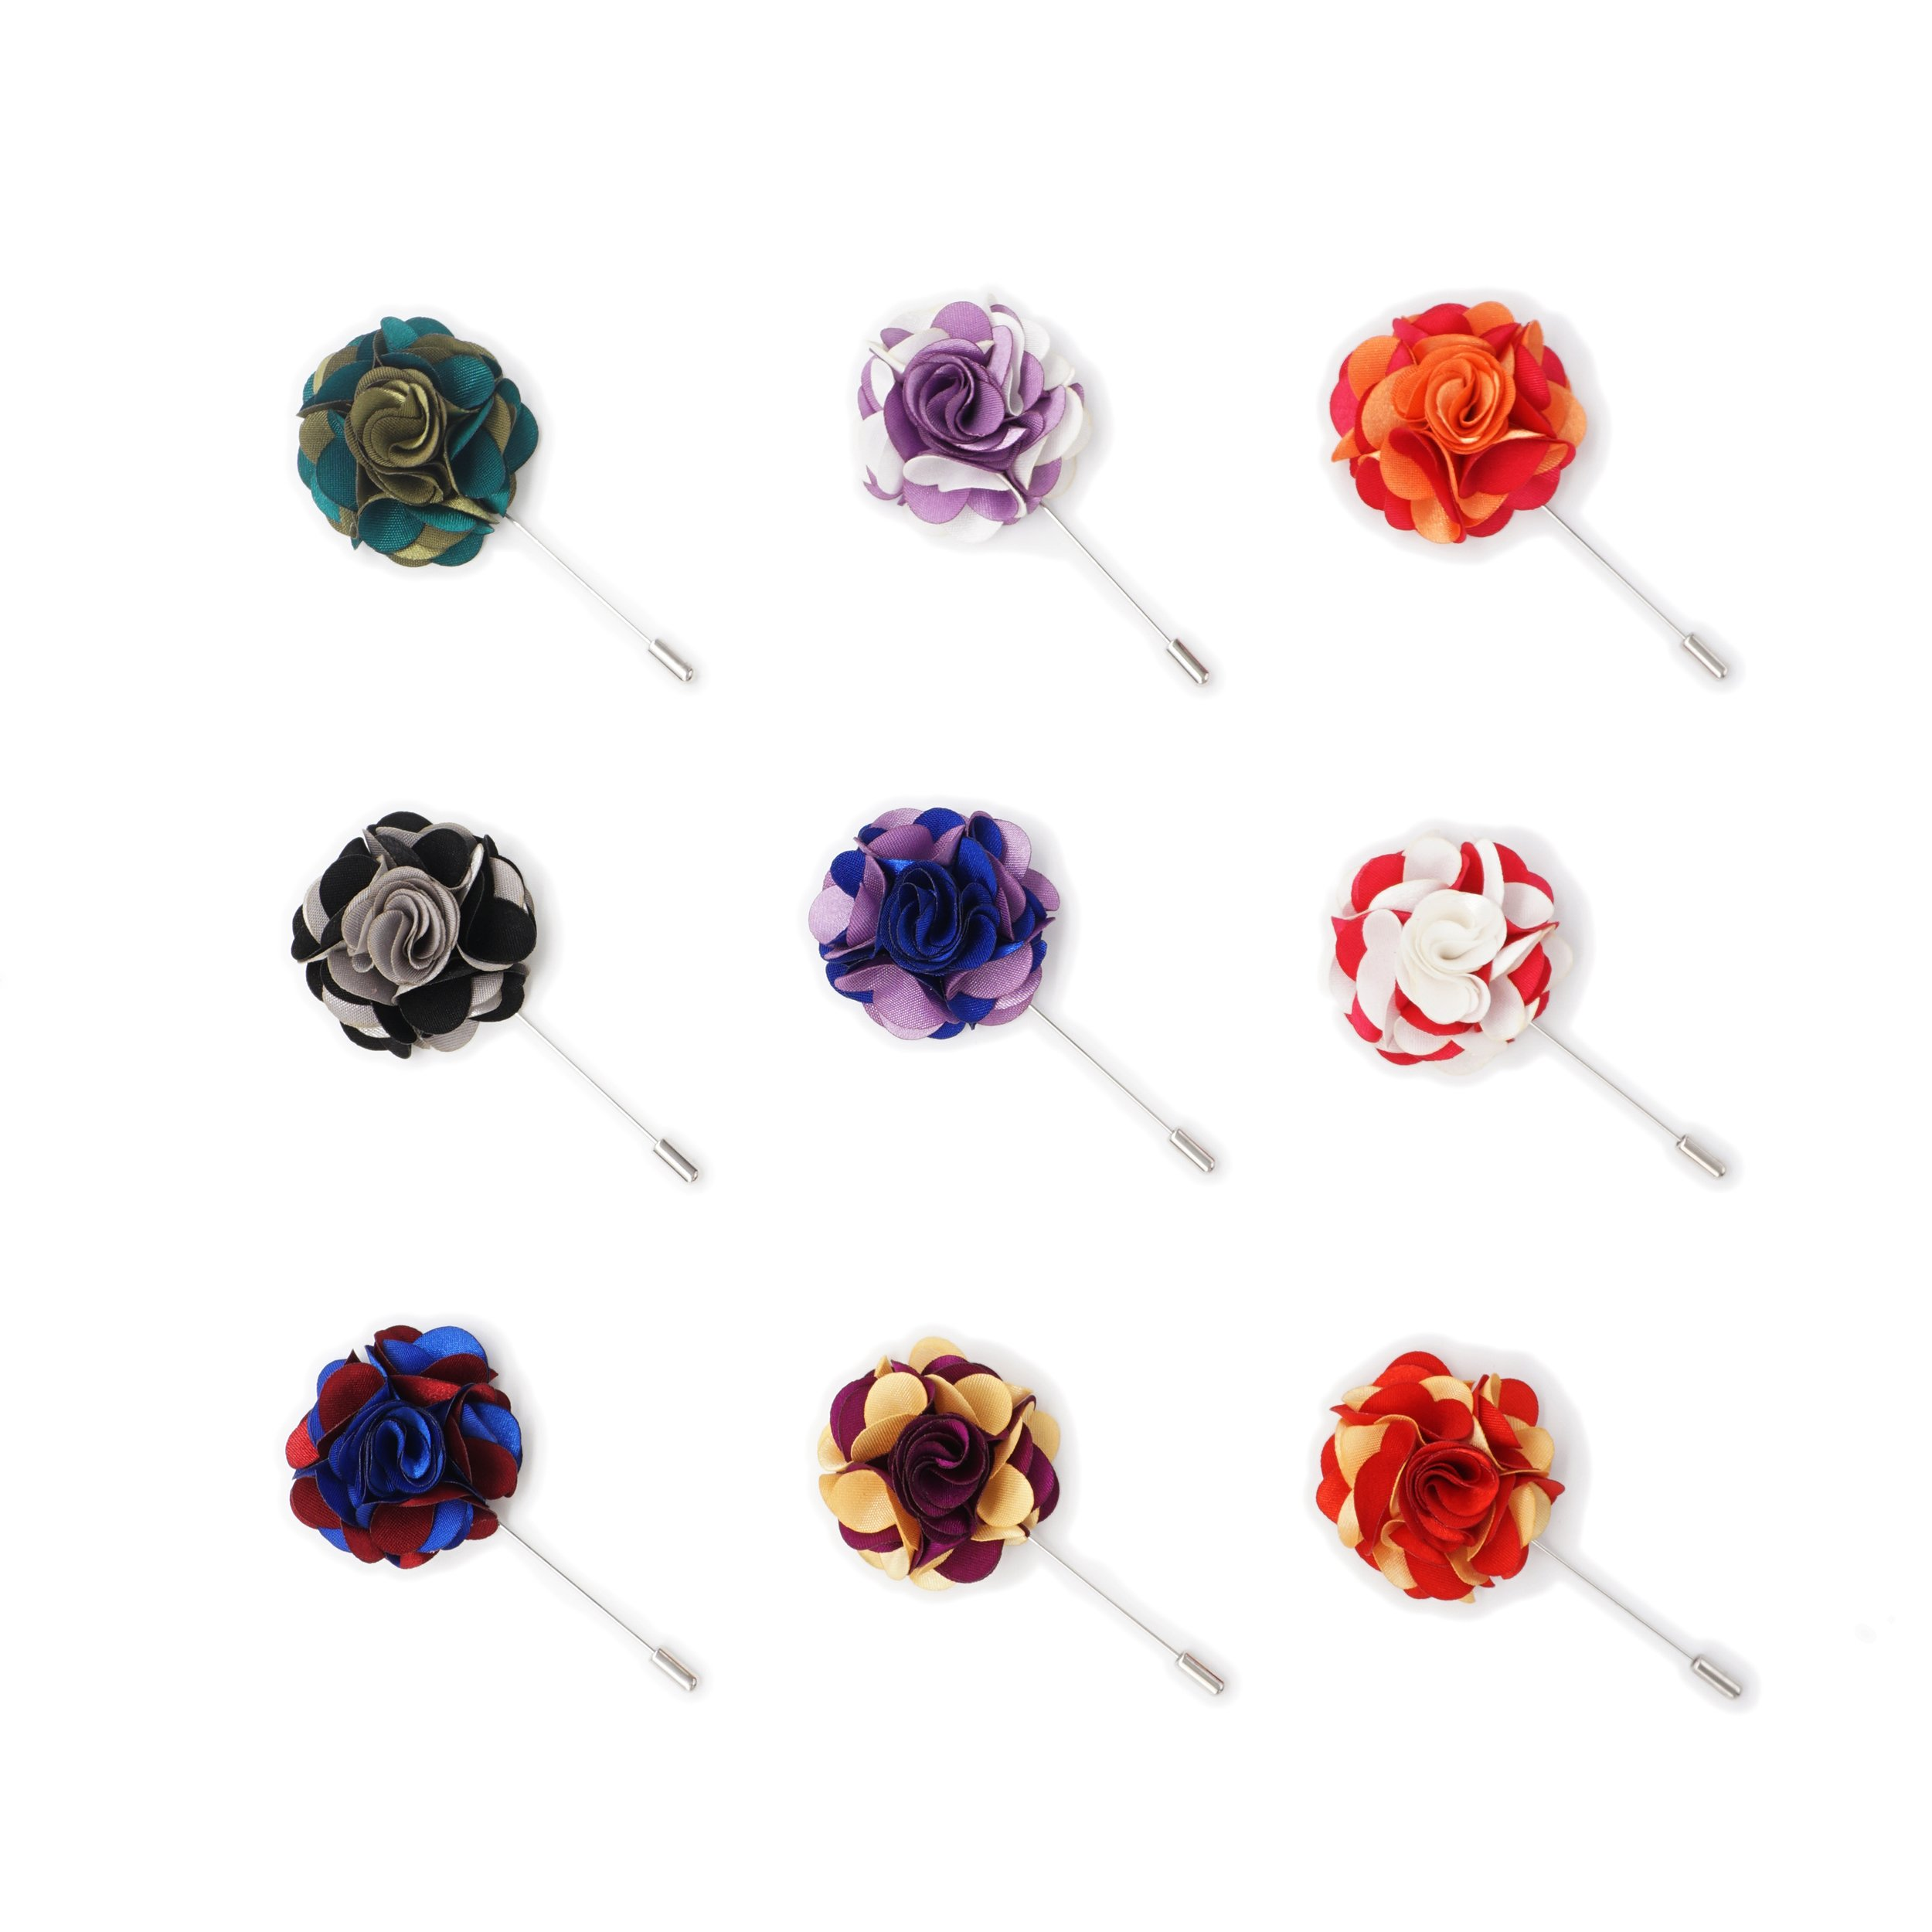 INNEE Handcrafted Lapel Flower 9pcs Boutonniere Pins in Clear Top Tin Box (Style 6) by INNEE JEWELRY